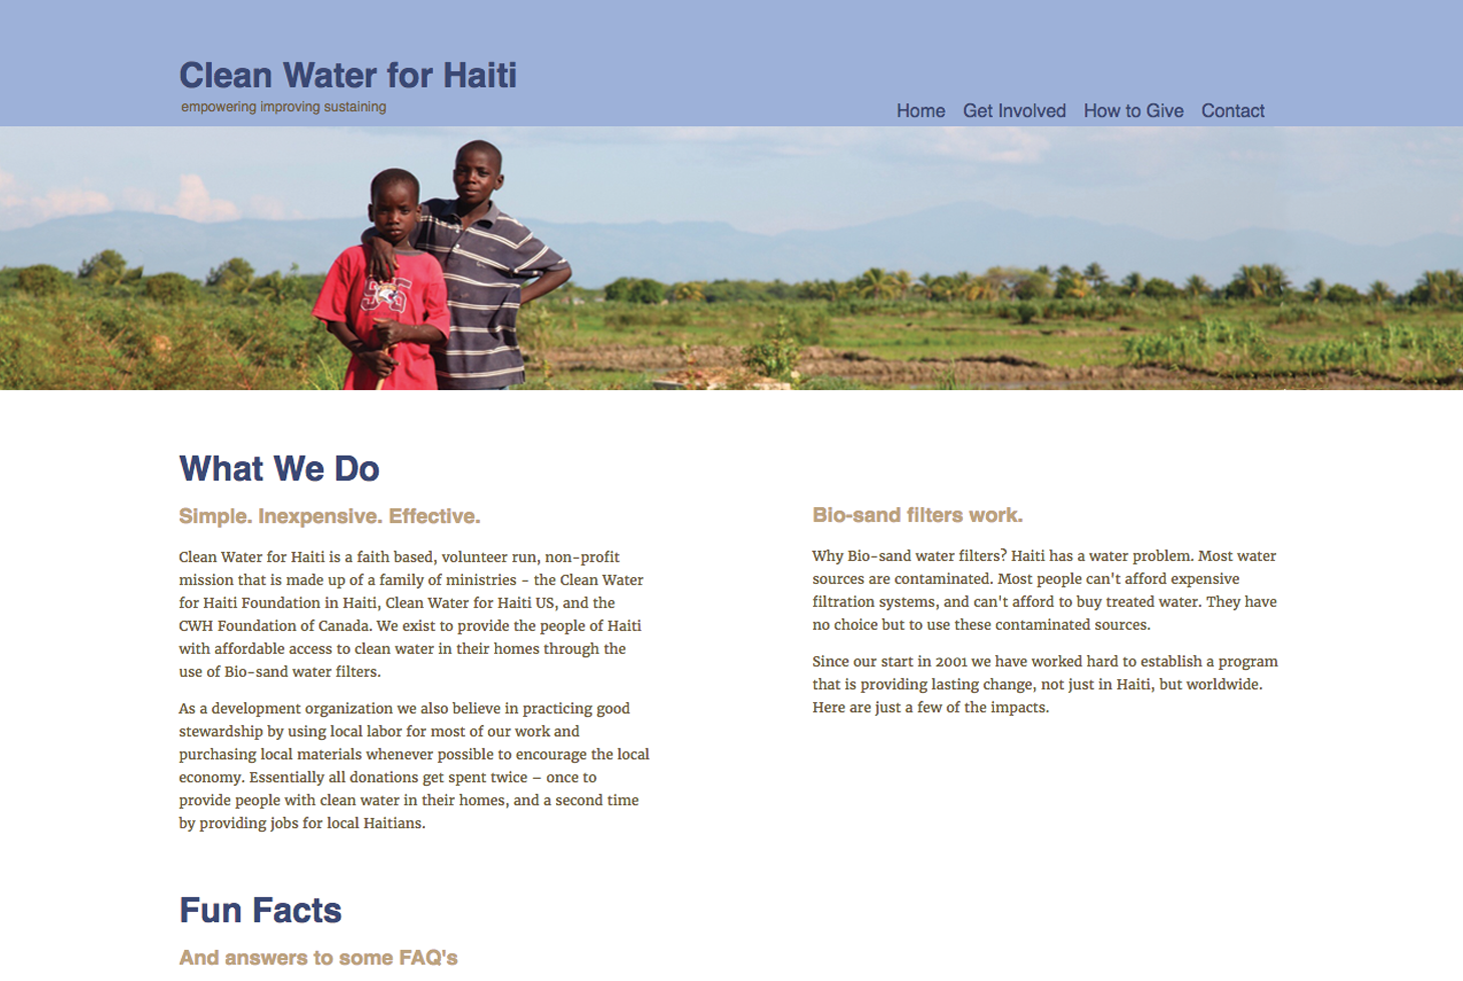 Clean Water for Haiti